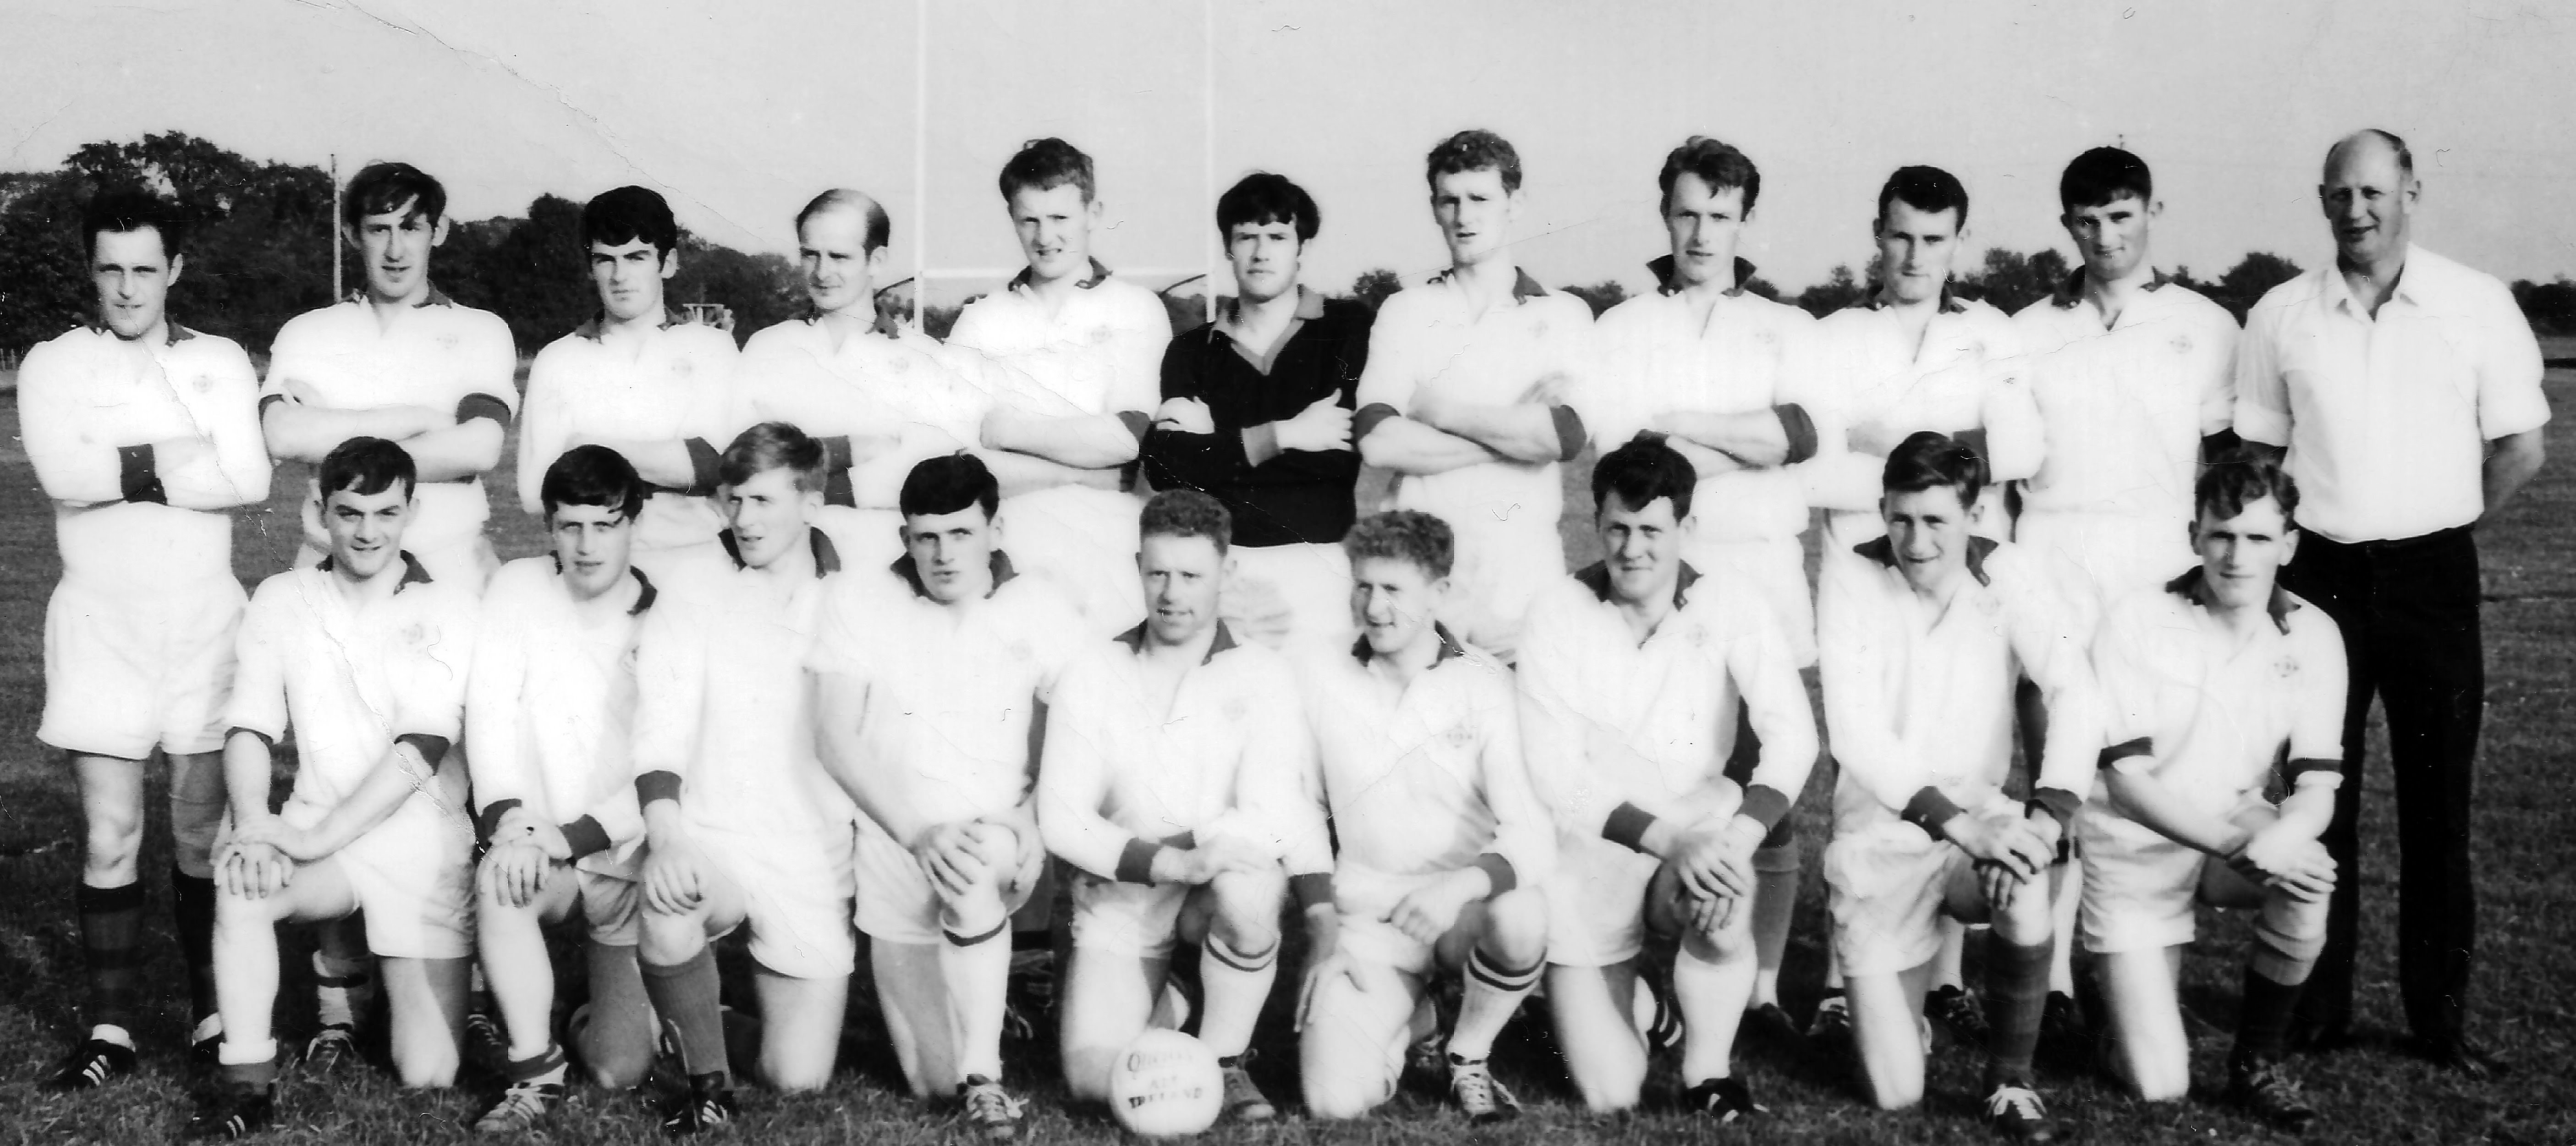 All Ireland Garda Football Team Circa 1970